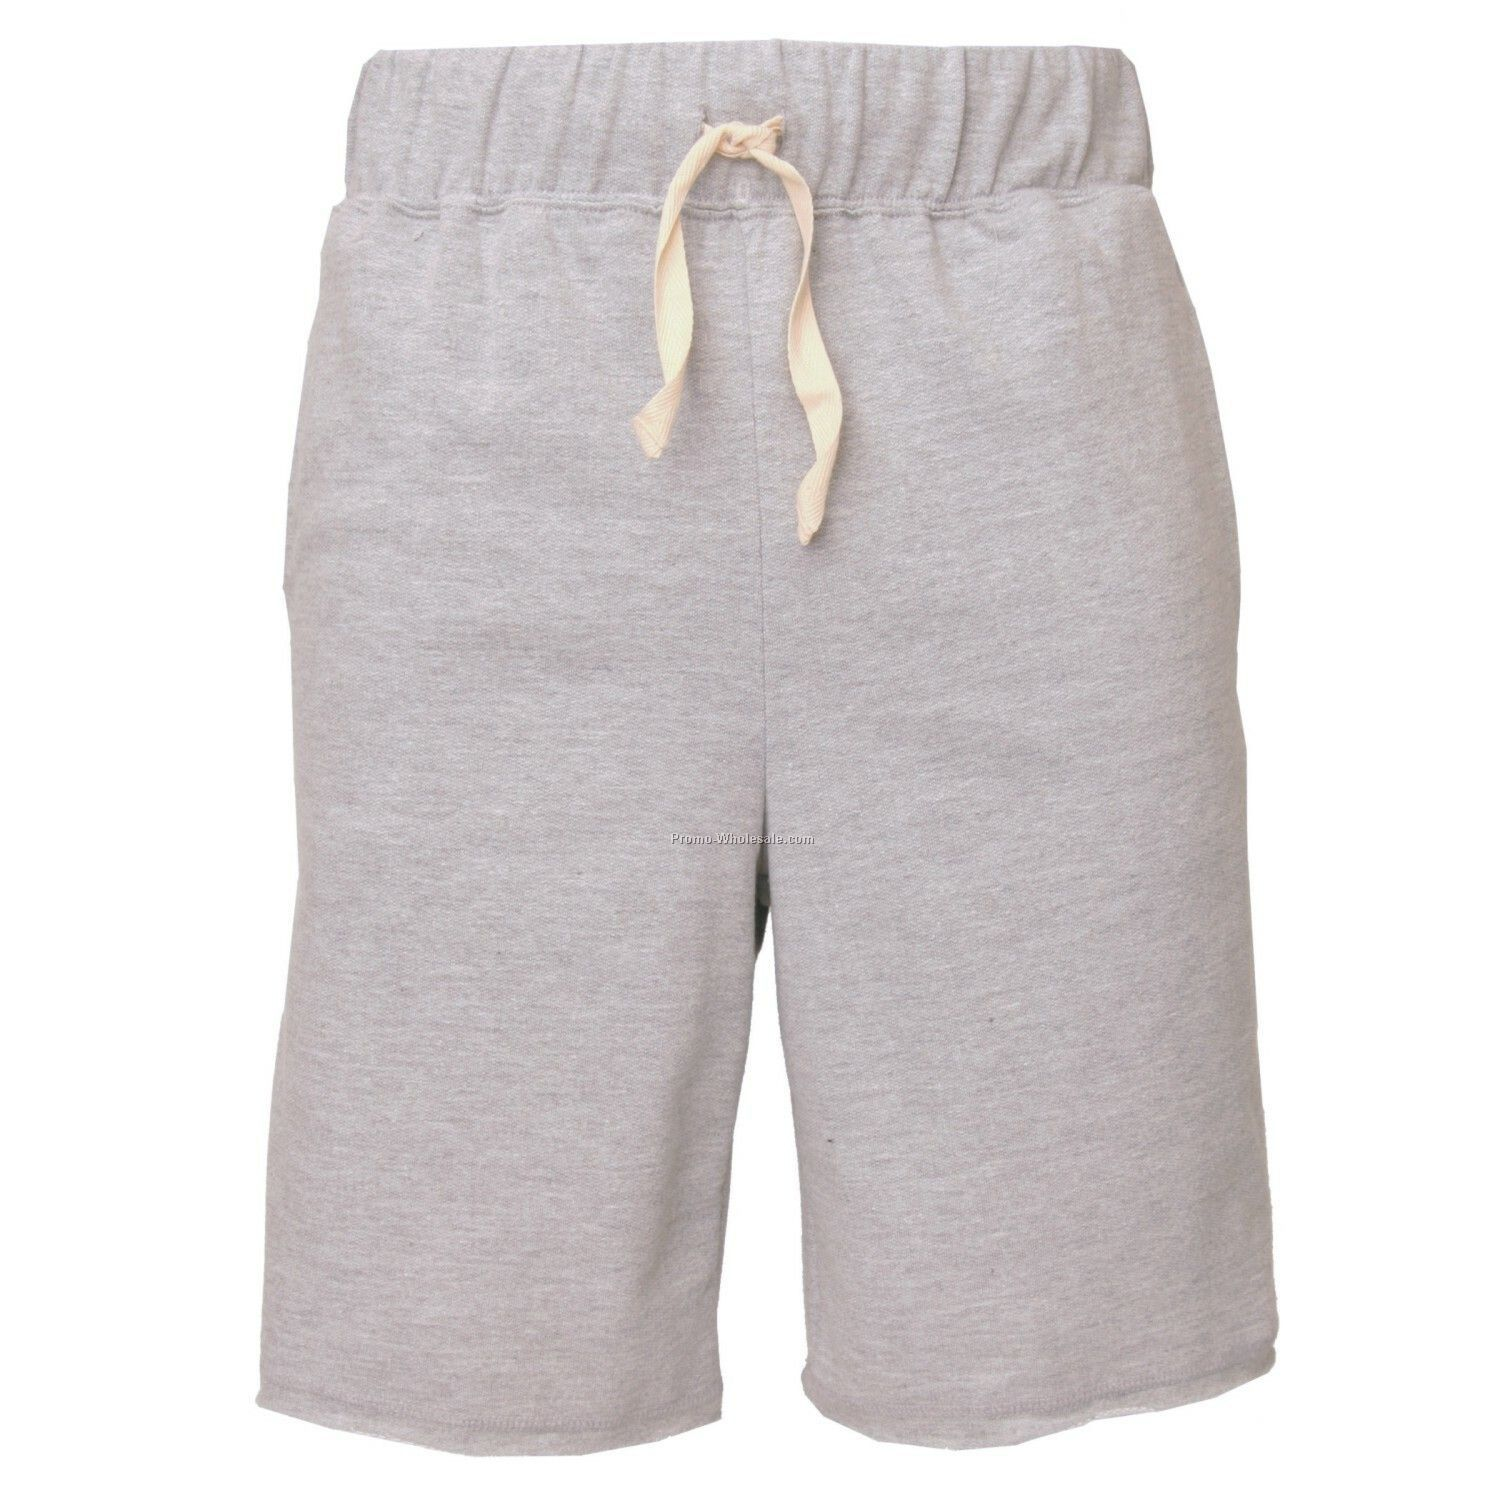 Adults` Heather Grey First Place Fleece Shorts With 2 Side Pockets (S-xl)